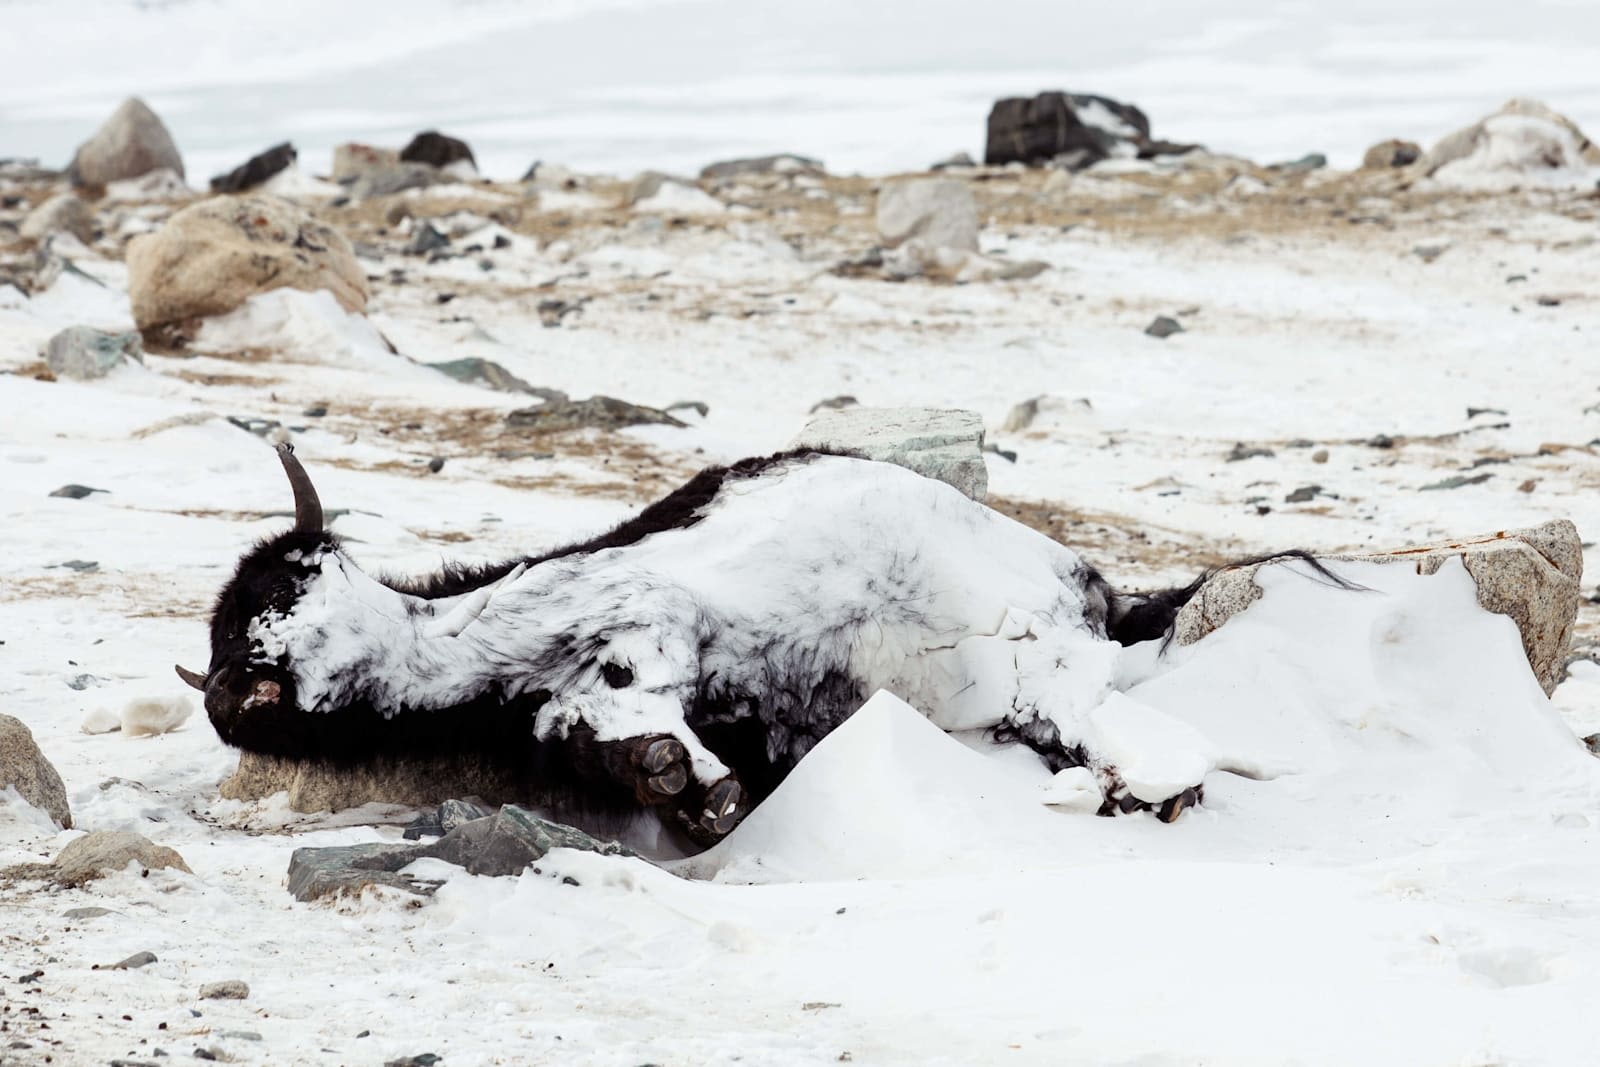 A Mongolian Moose frozen to death on a mountain